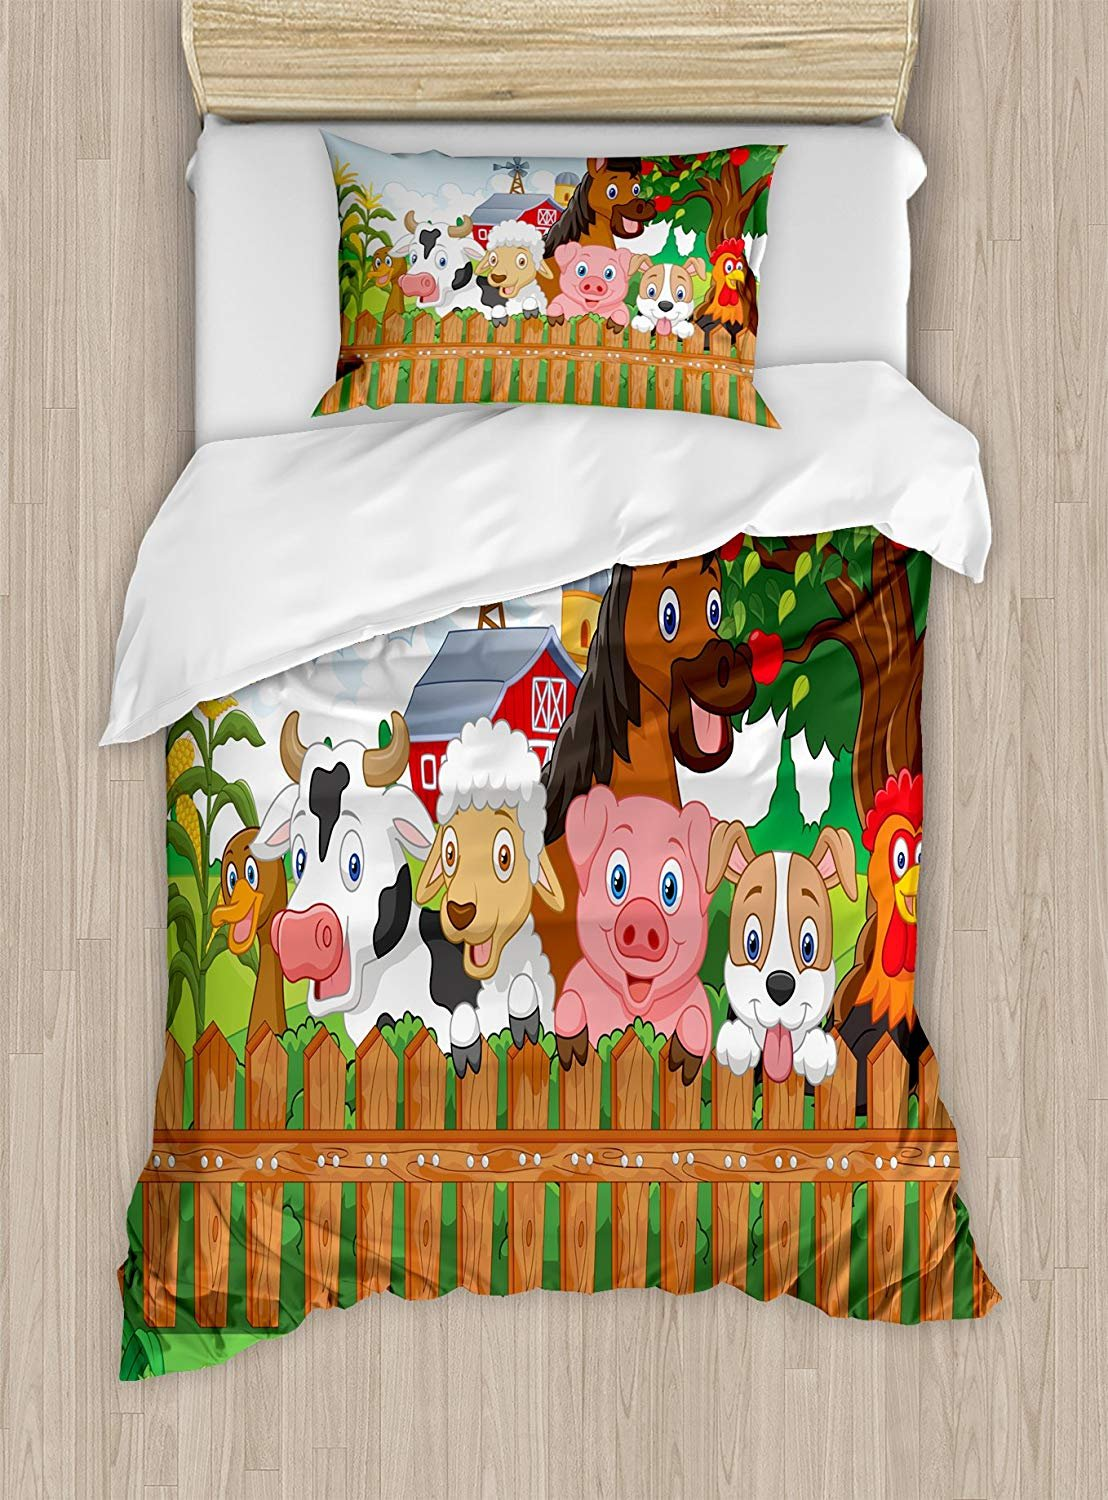 Twin XL Extra Long Bedding Set,Cartoon Duvet Cover Set,Collection Cute Farm Animals on Fence Comic Mascots with Dog Cow Horse Kids Design,Cosy House Collection 4 Piece Bedding Sets